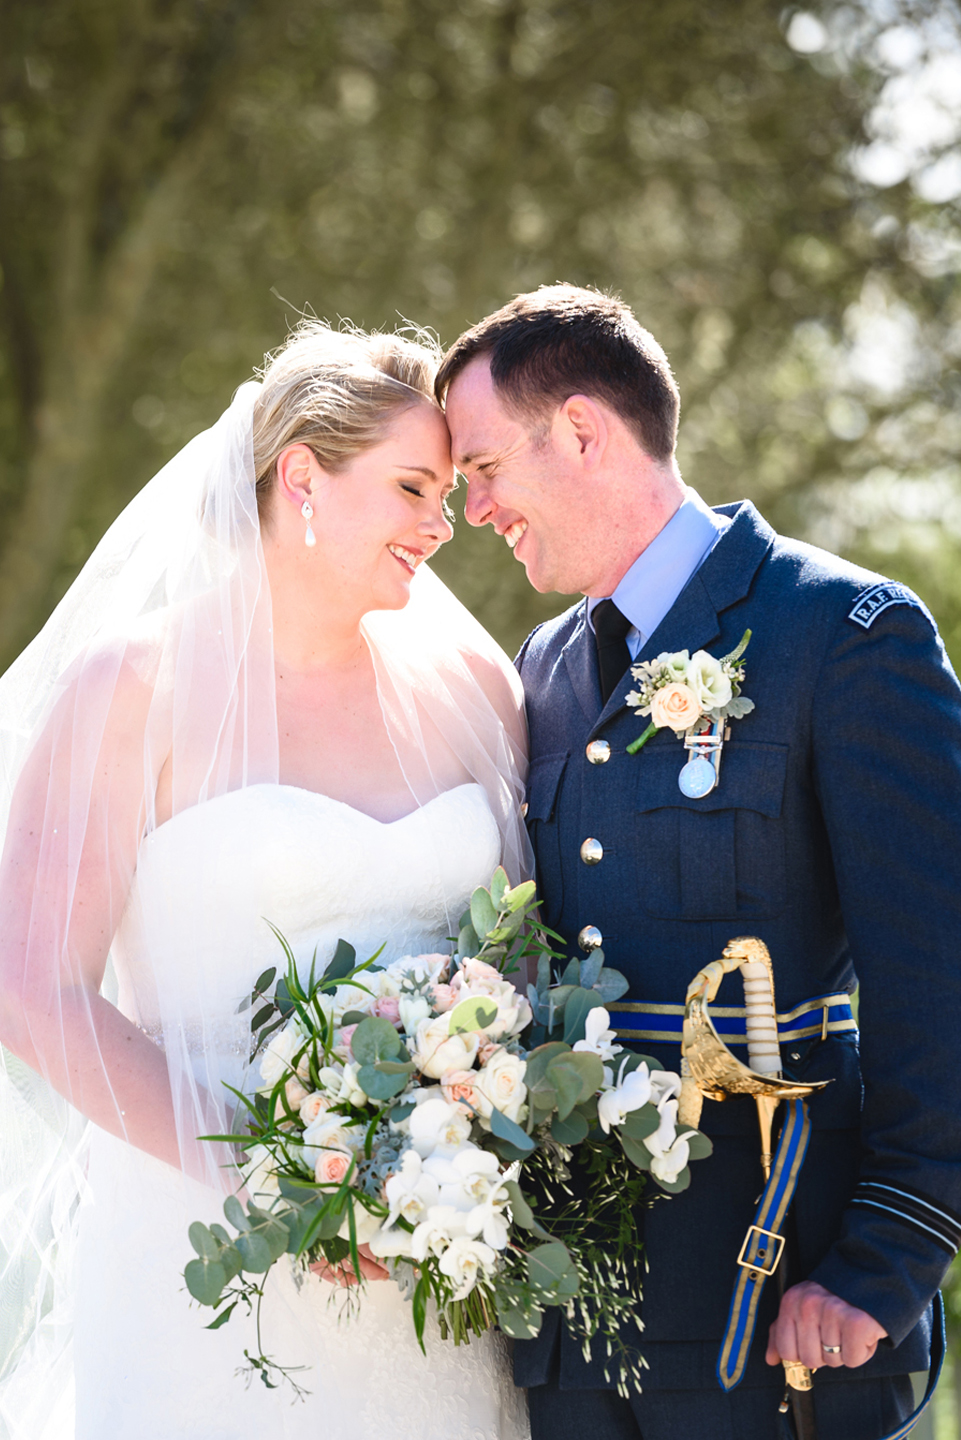 The happy couple steal a moment away from guests to stroll around their country wedding venue